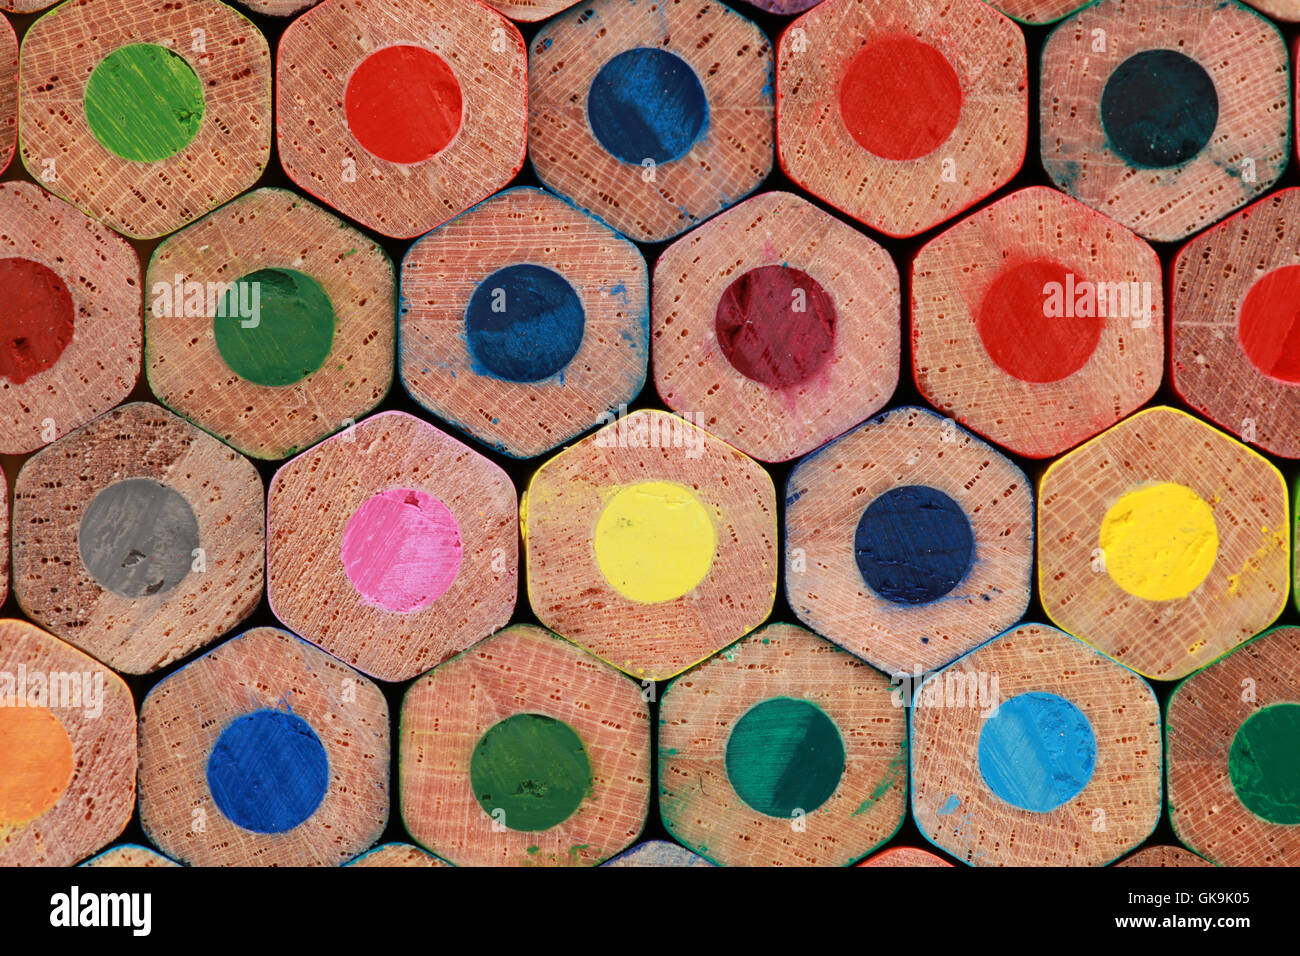 underside of colored pencils - Stock Image